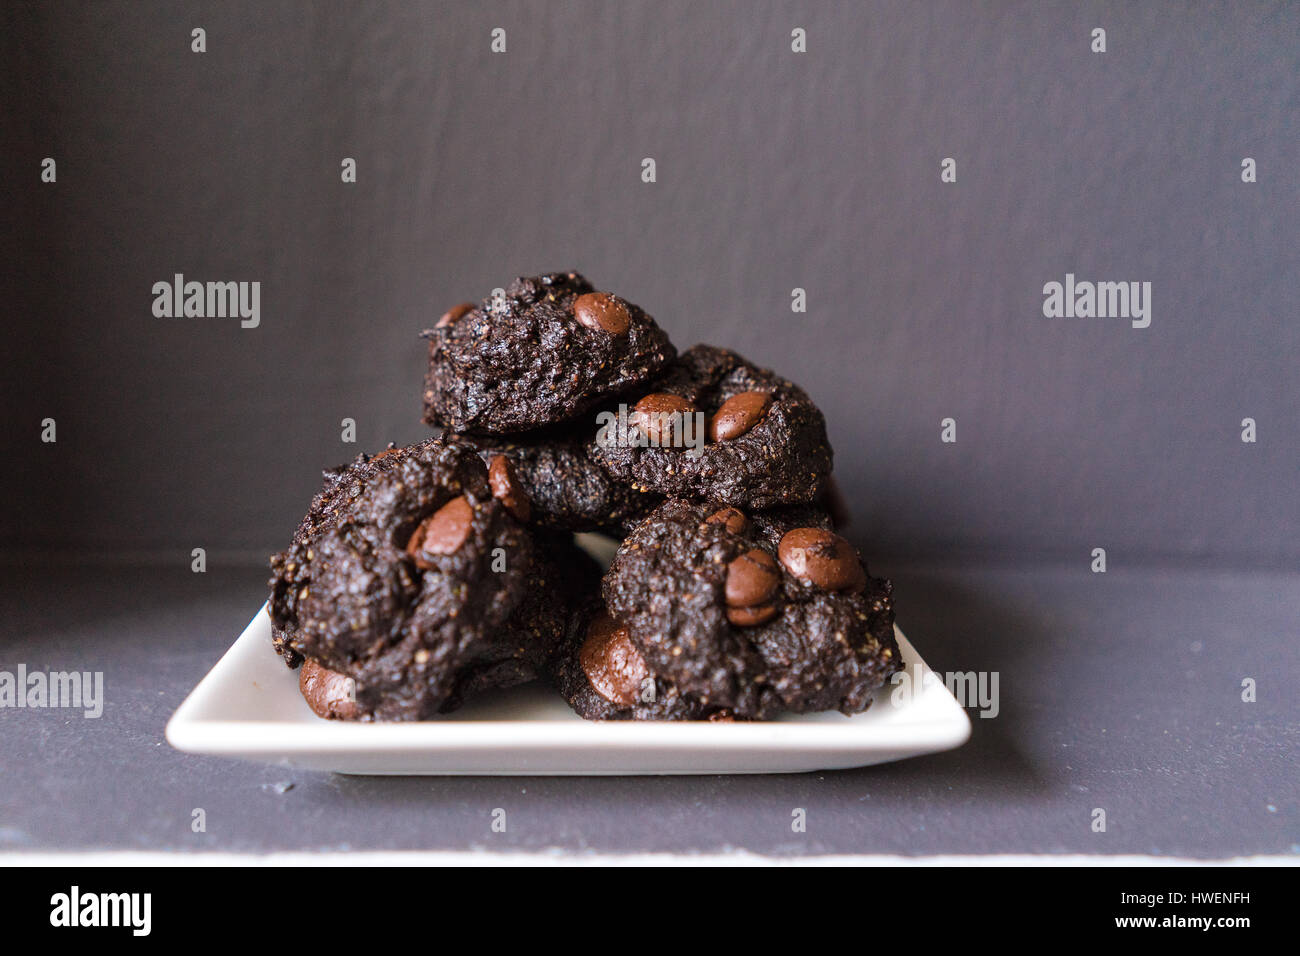 Stack of Vegan chocolate brownie cookie on white square plate - Stock Image